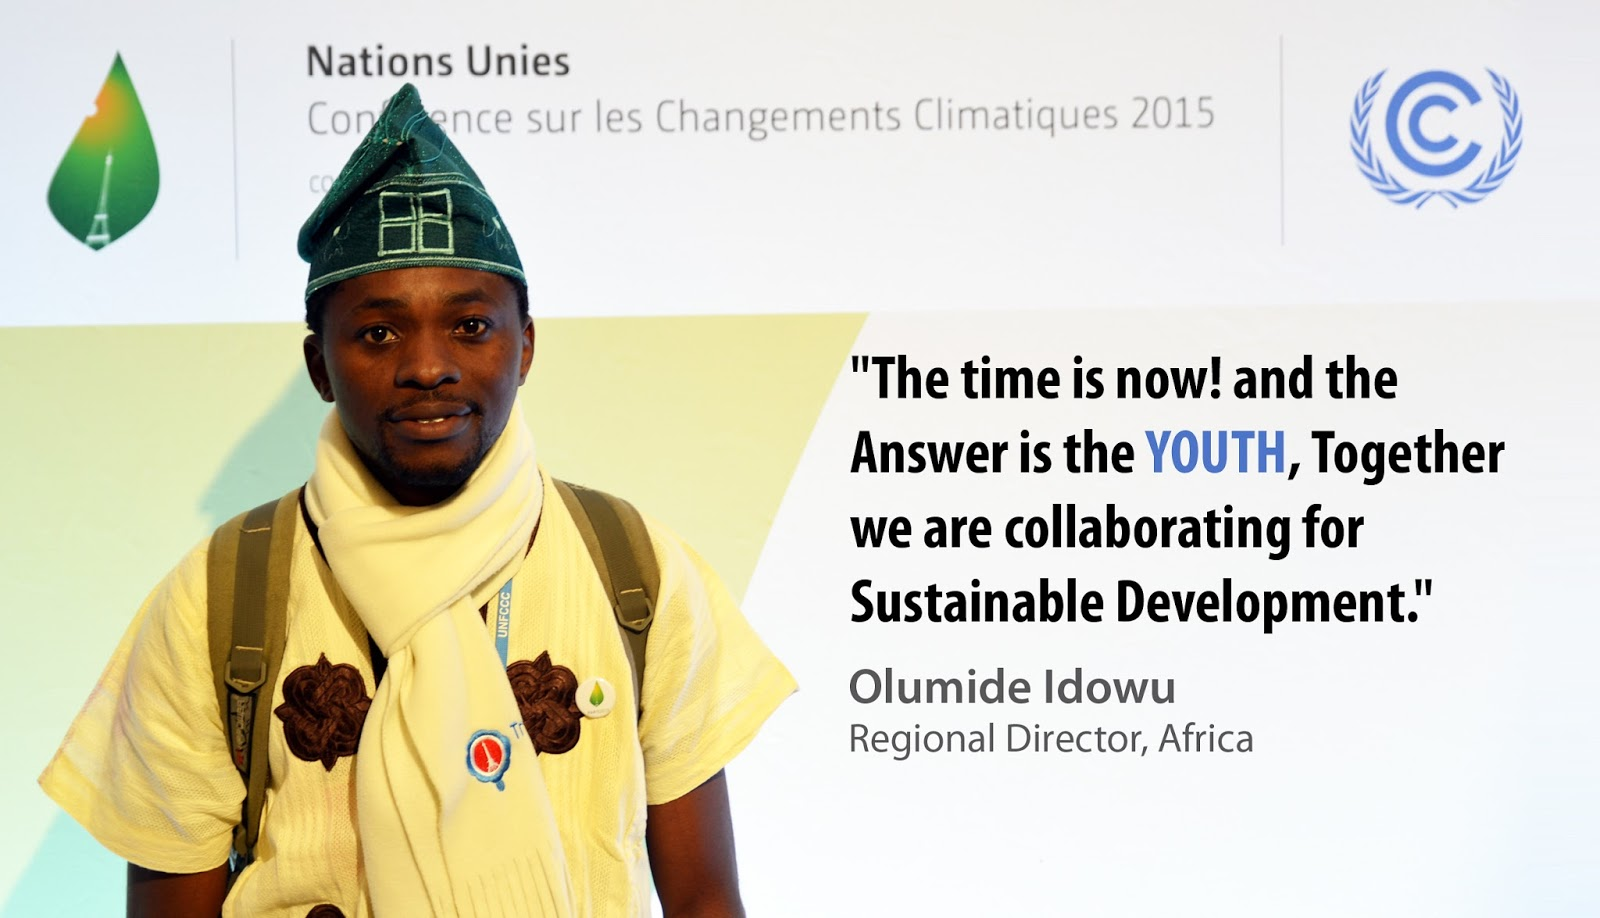 Olumide Idowu, IYF Regional Director for Africa